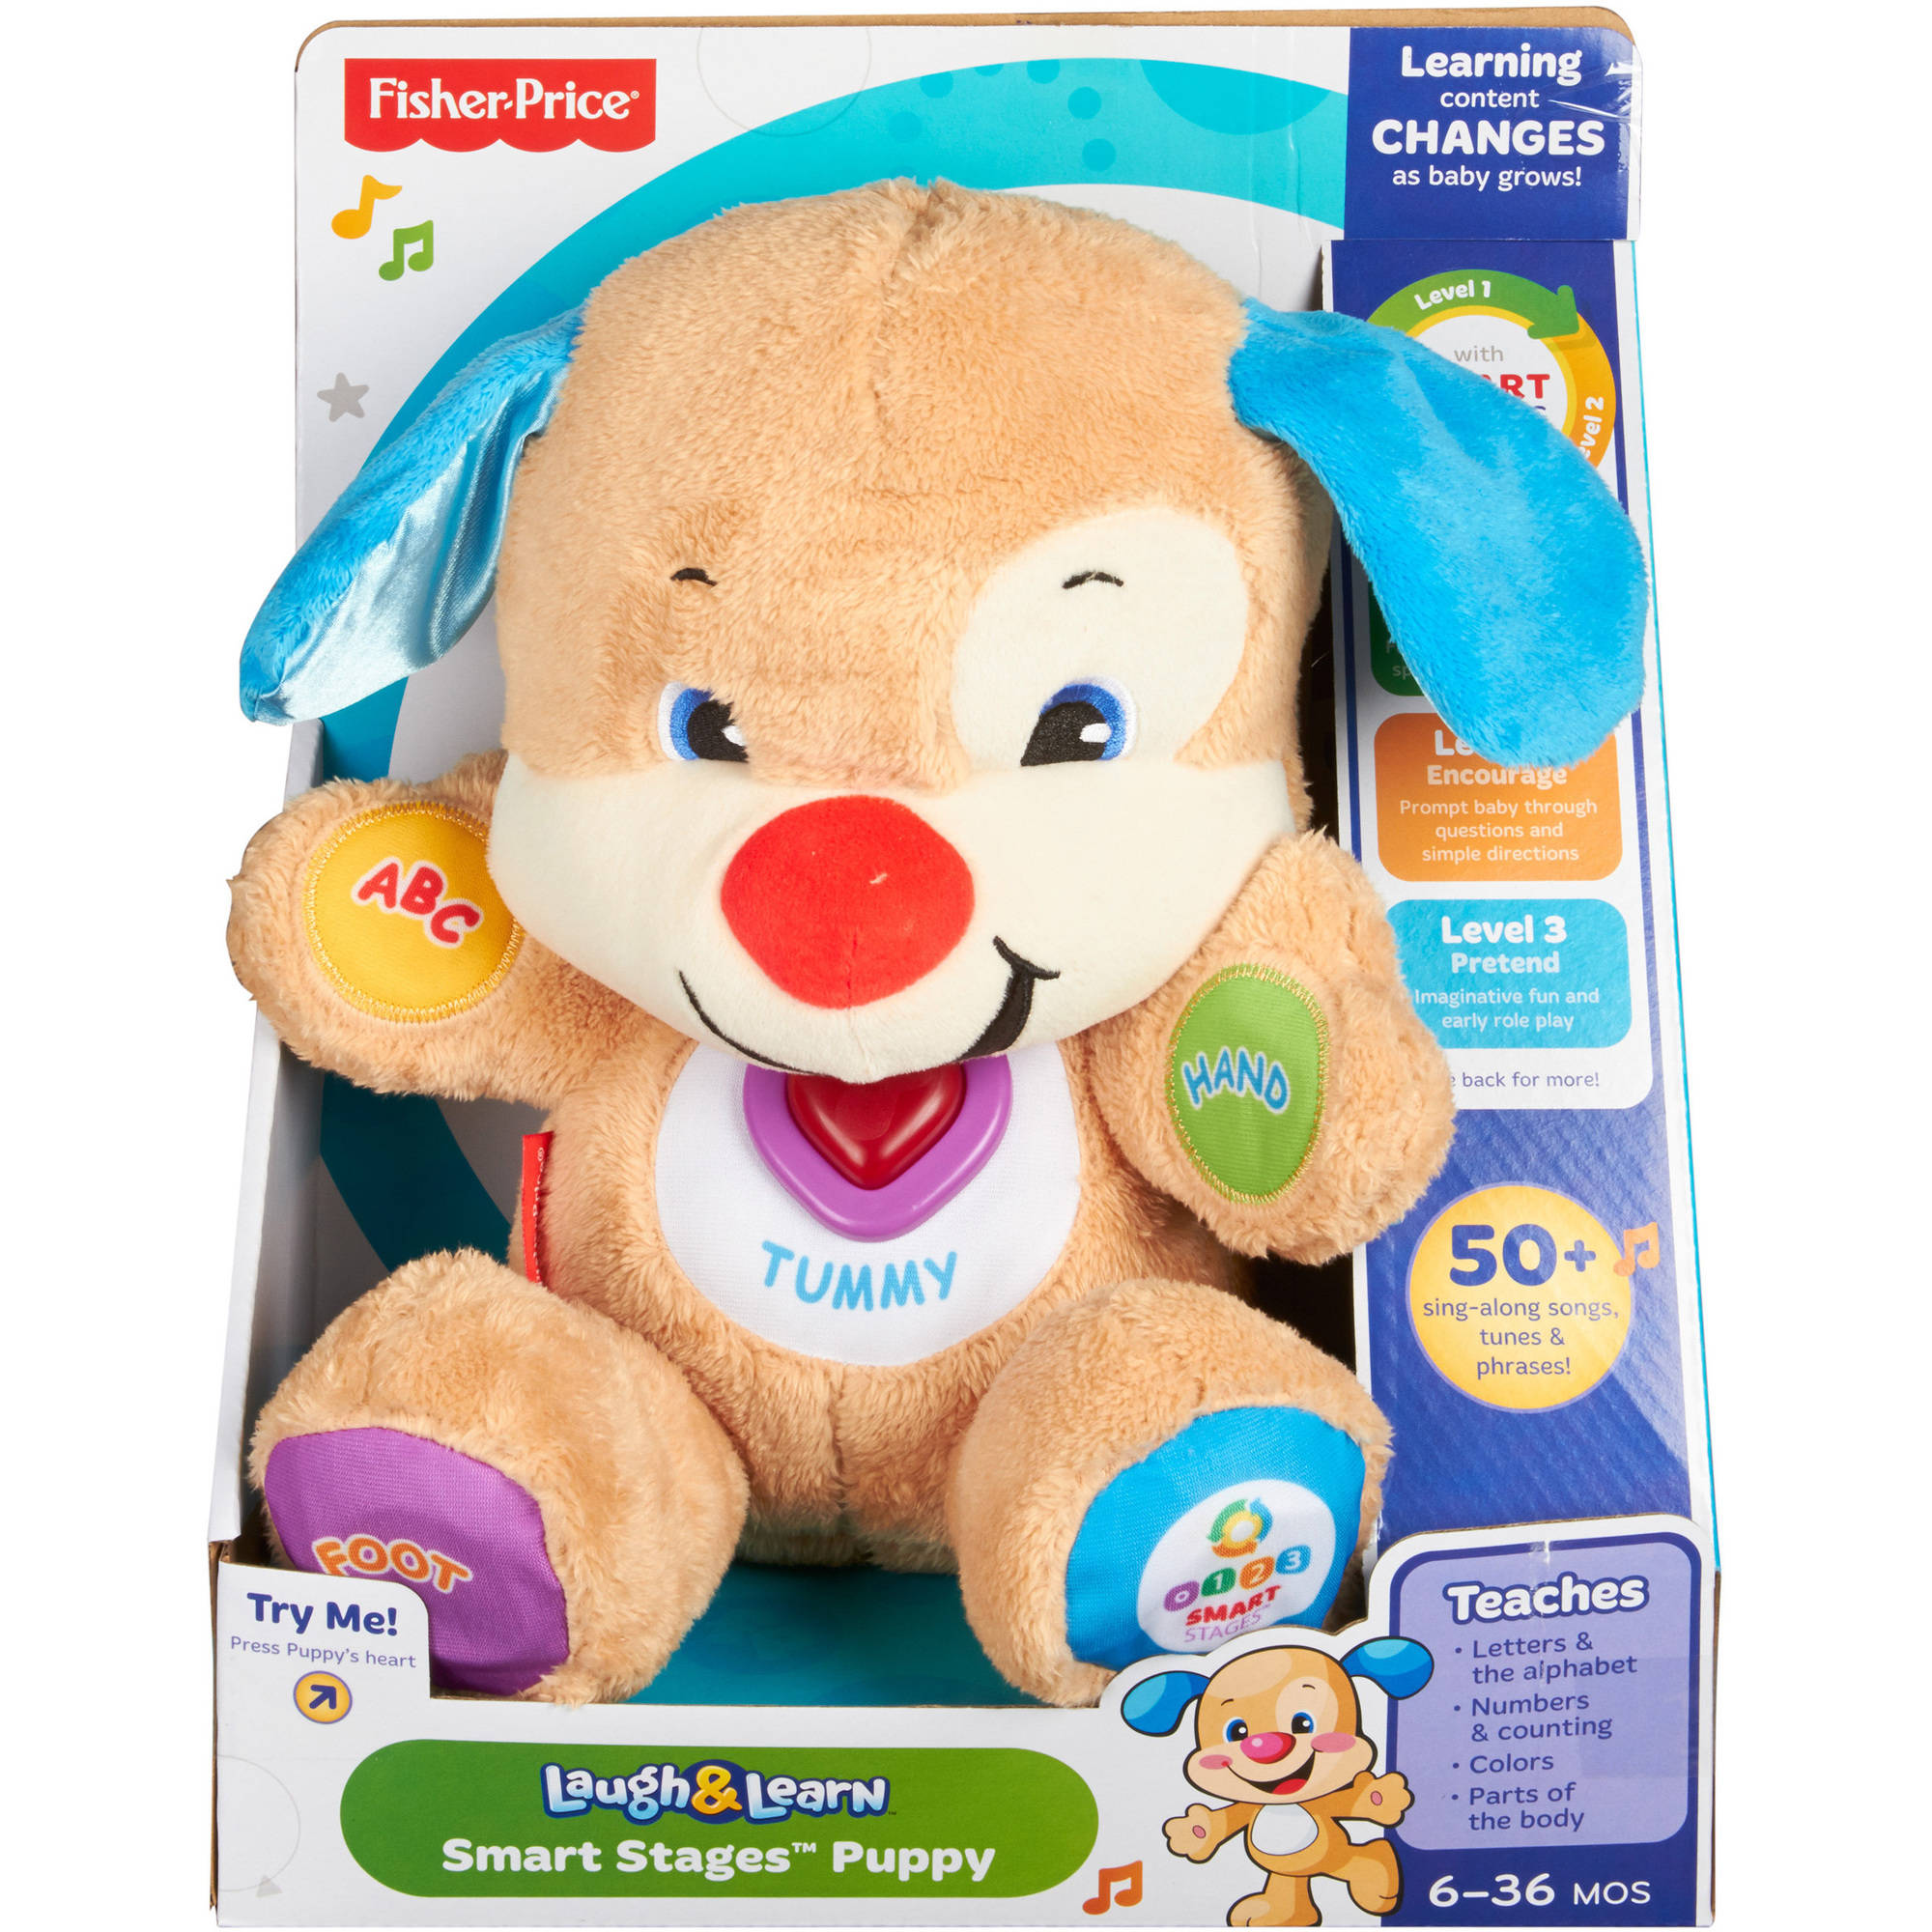 Toys, Baby Gear, Parenting Guide & Online Games - Fisher Price